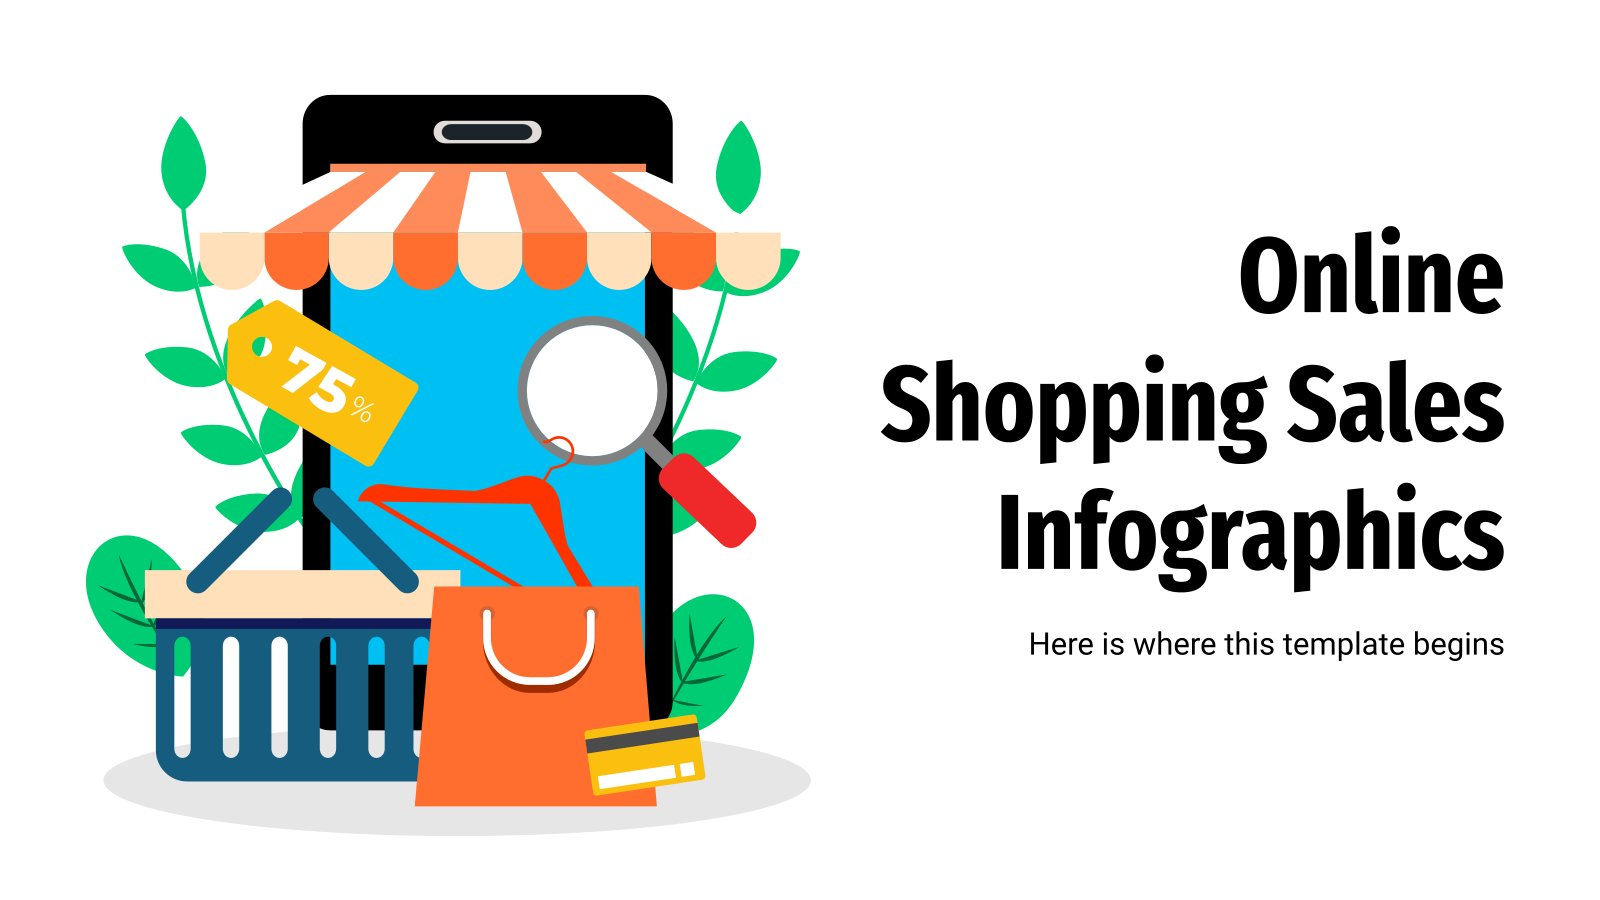 Online Shopping Sales Infographics presentation template